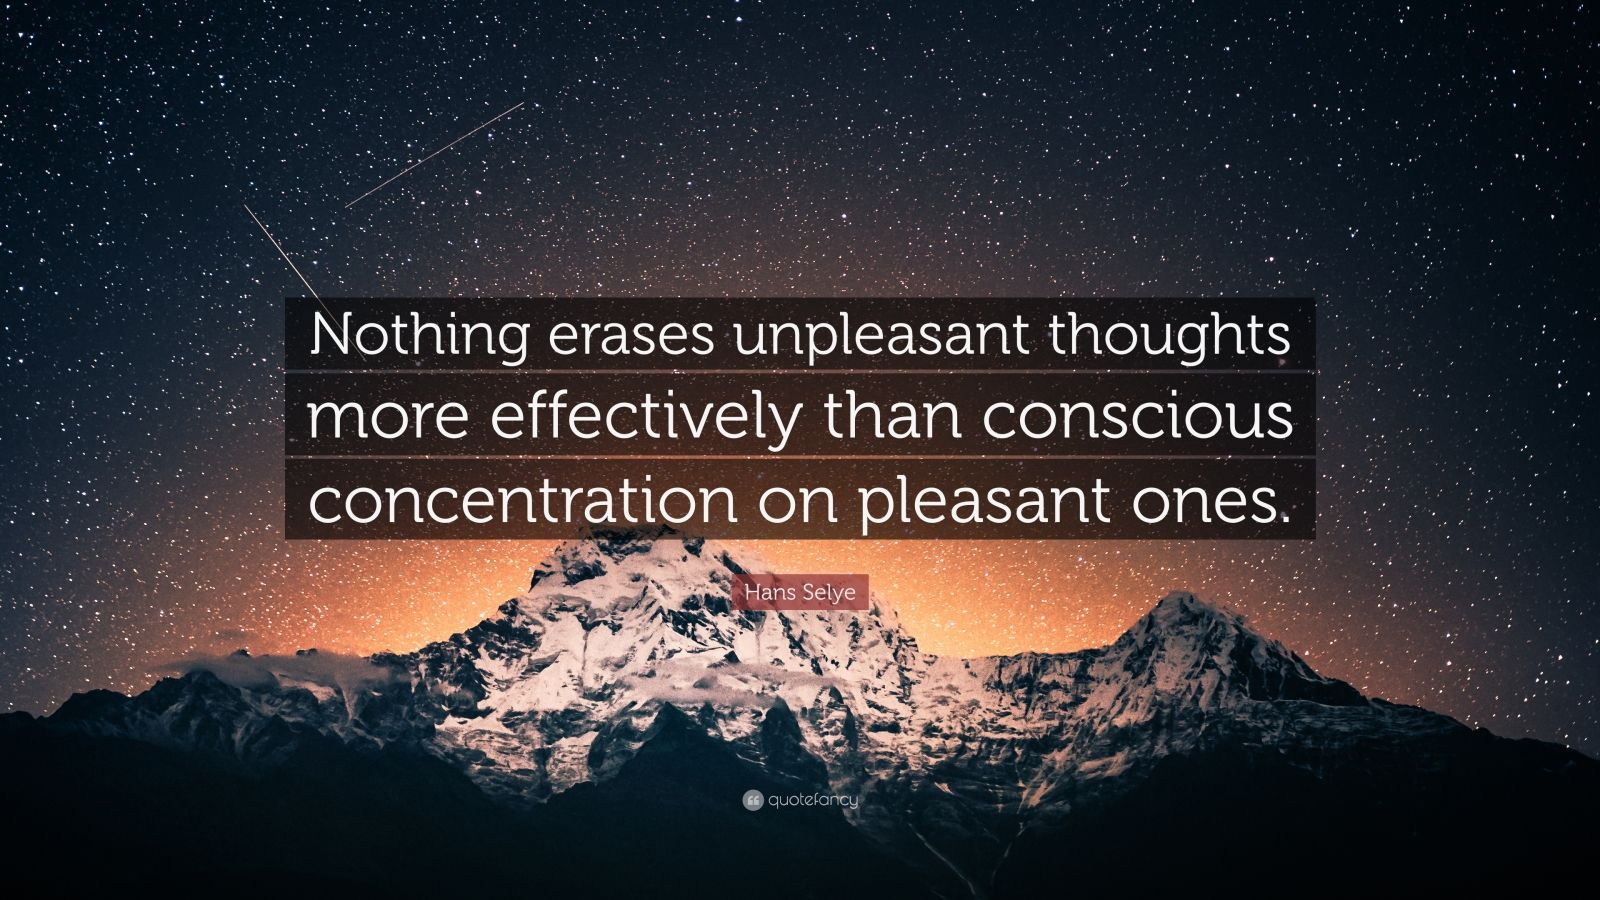 """Hans Selye Quote: """"Nothing erases unpleasant thoughts more effectively than conscious concentration on pleasant ones."""""""